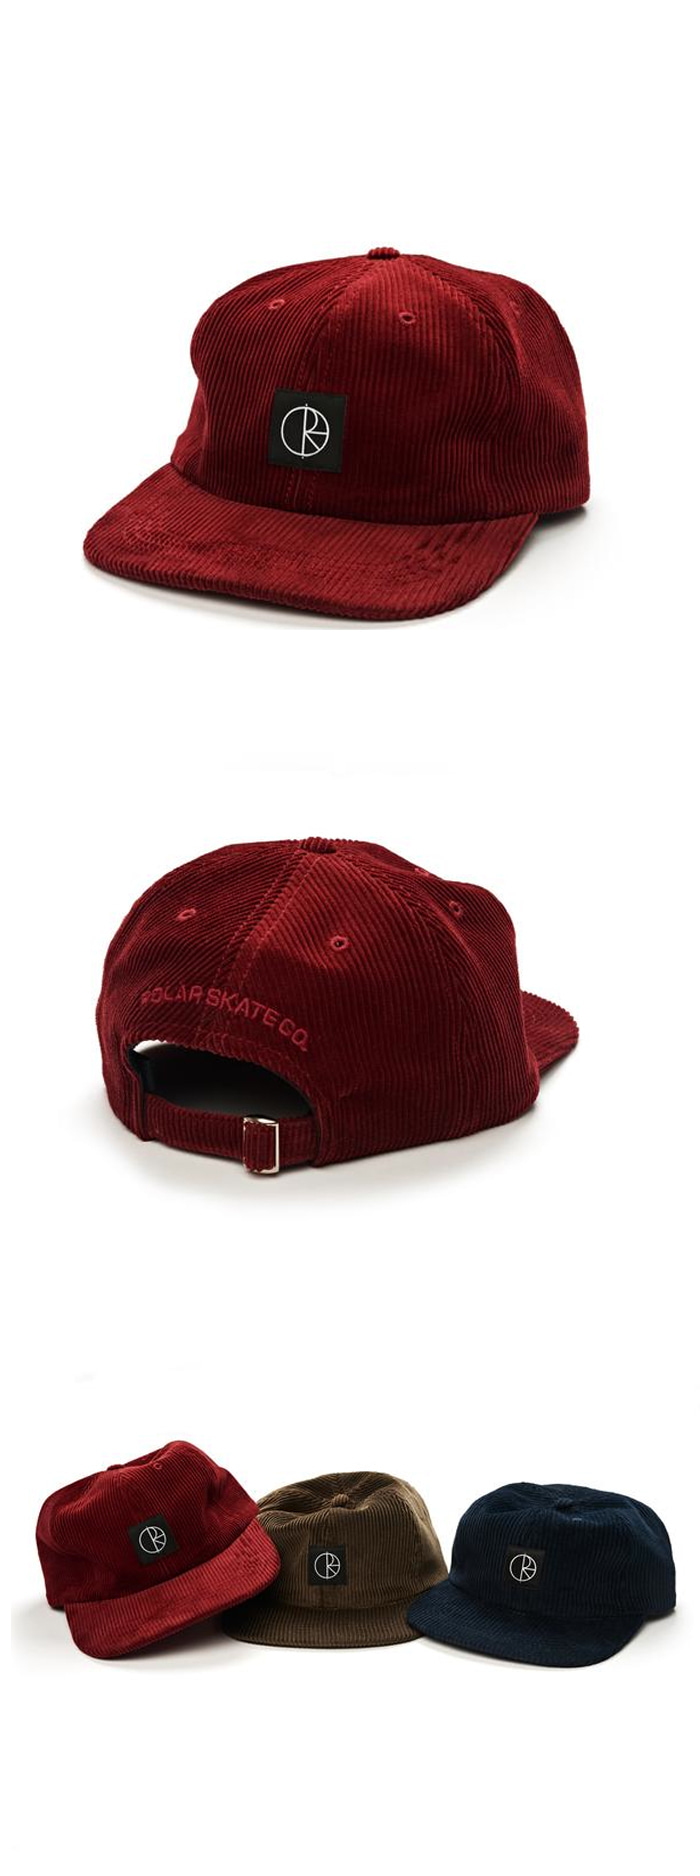 폴라(POLAR) Corduroy Cap - Red